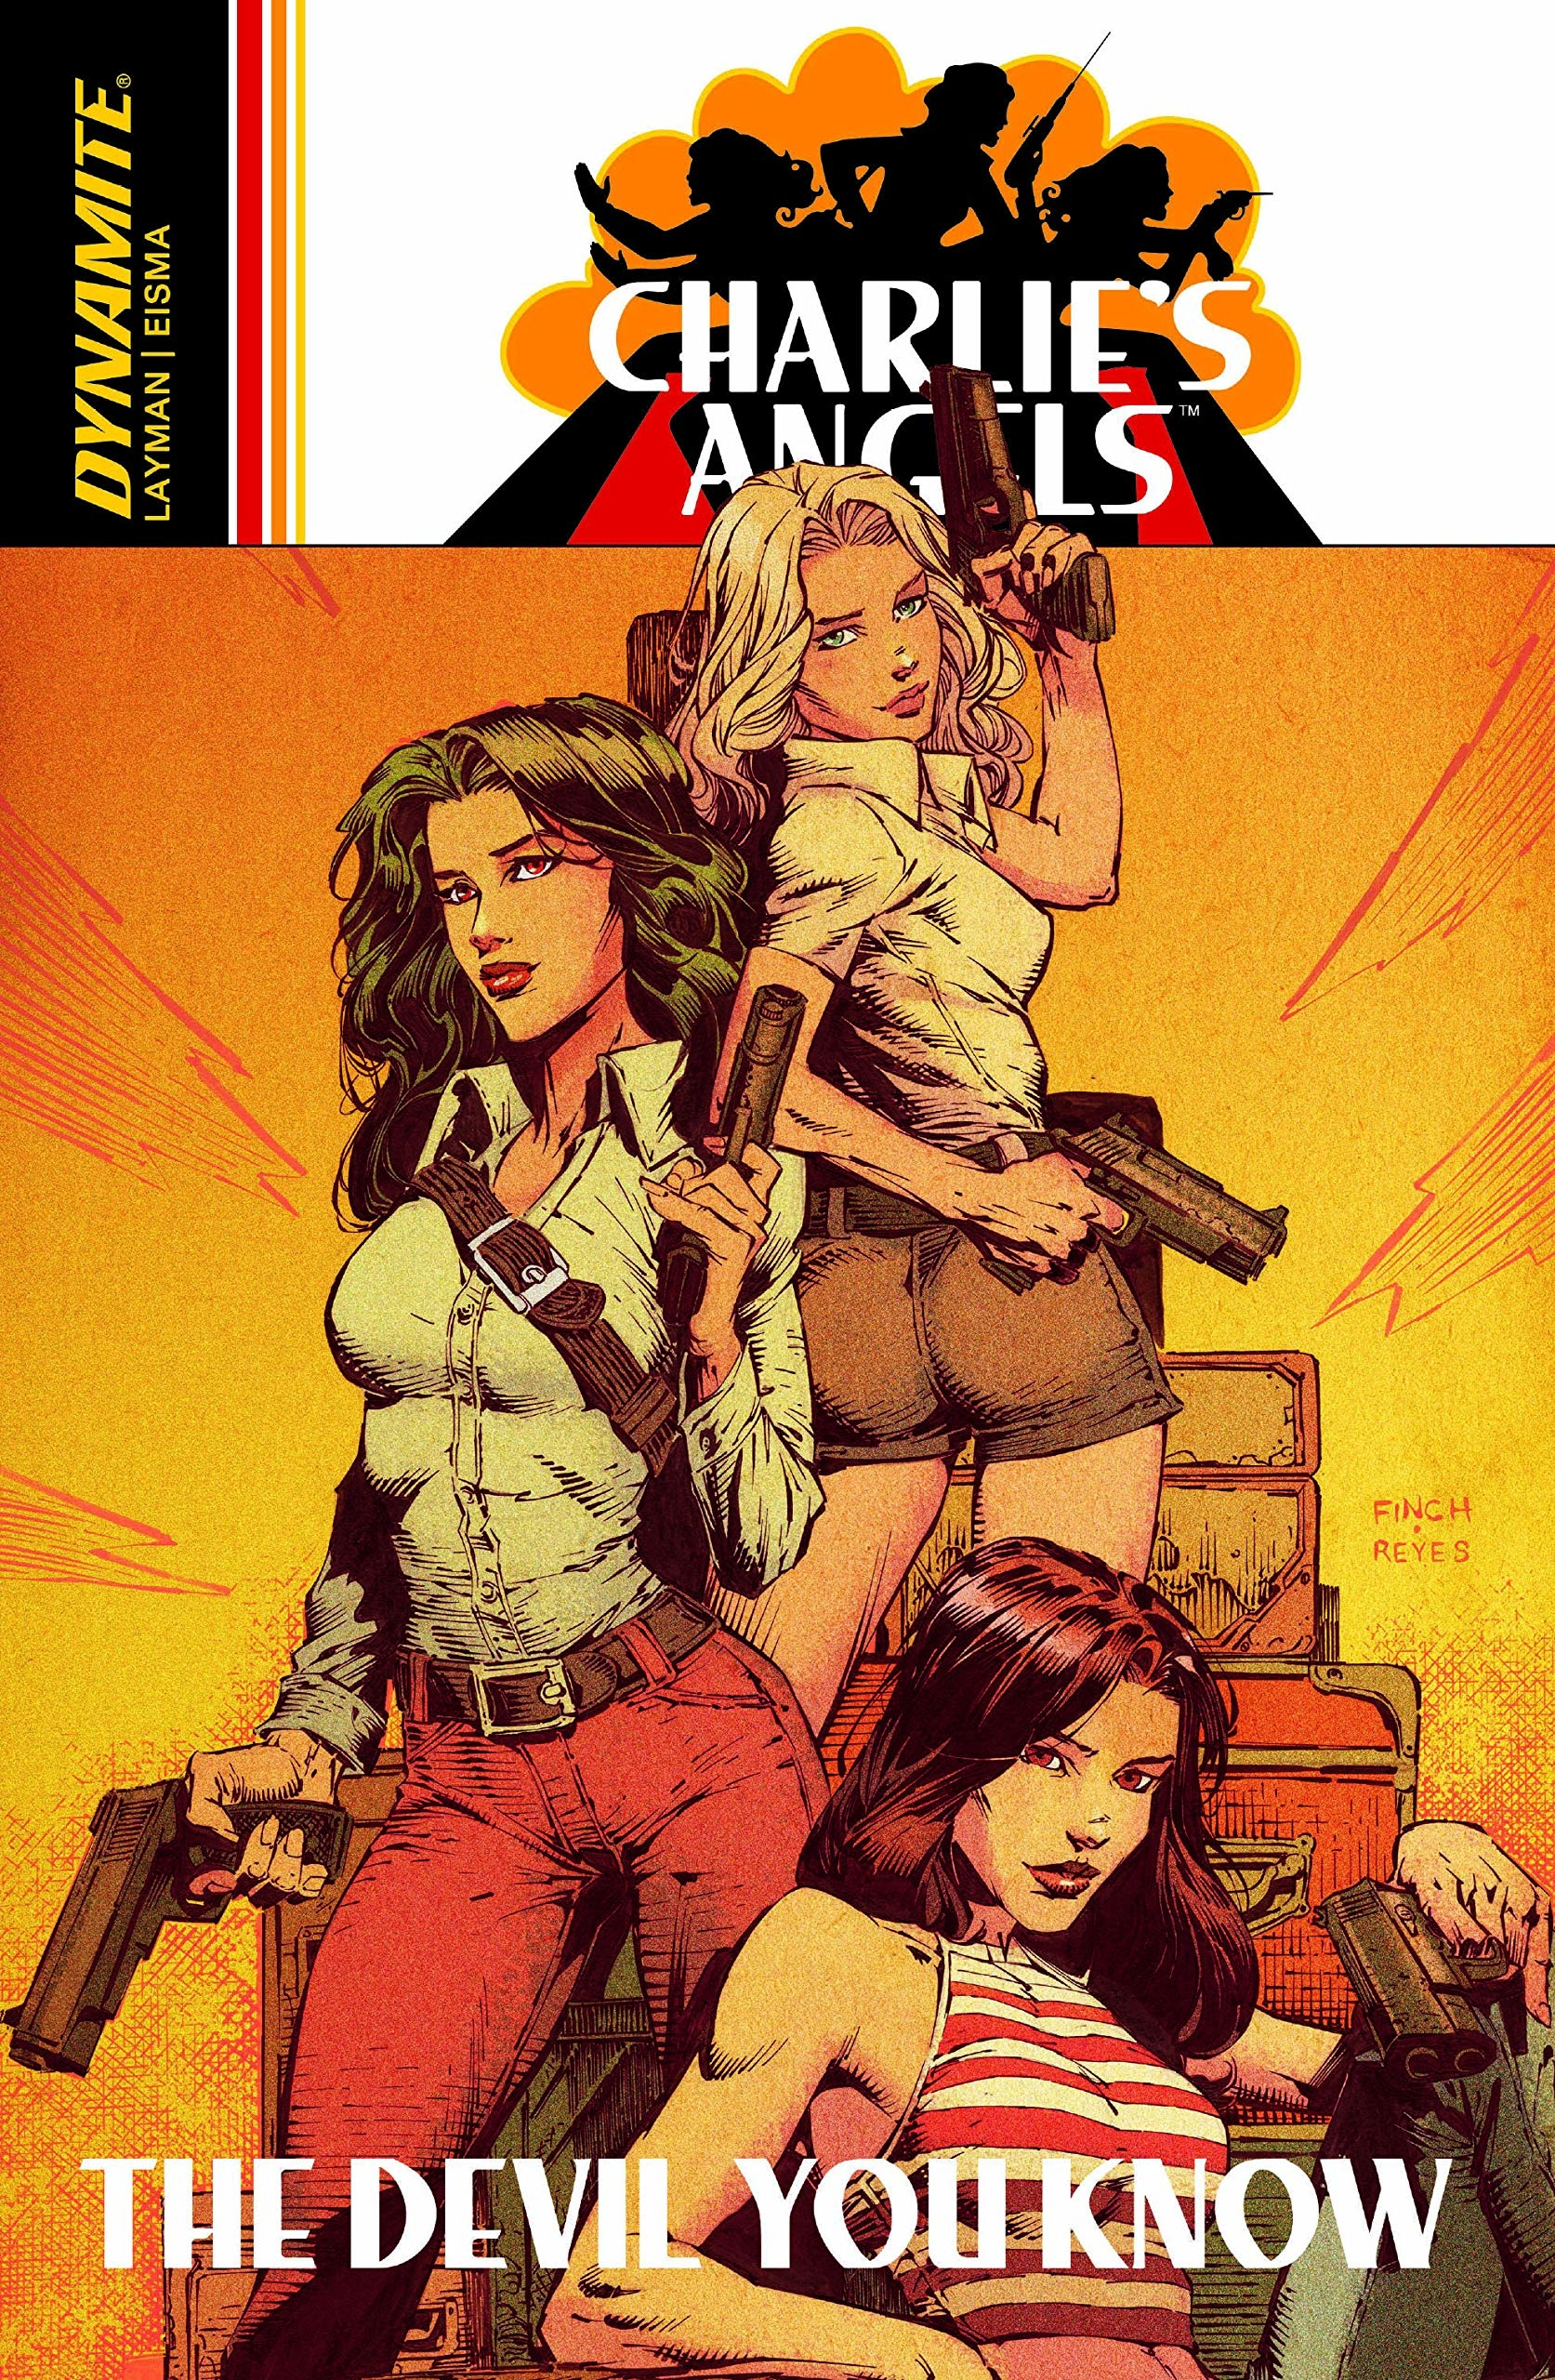 CHARLIES ANGELS TP VOL 01 (OCT181168)